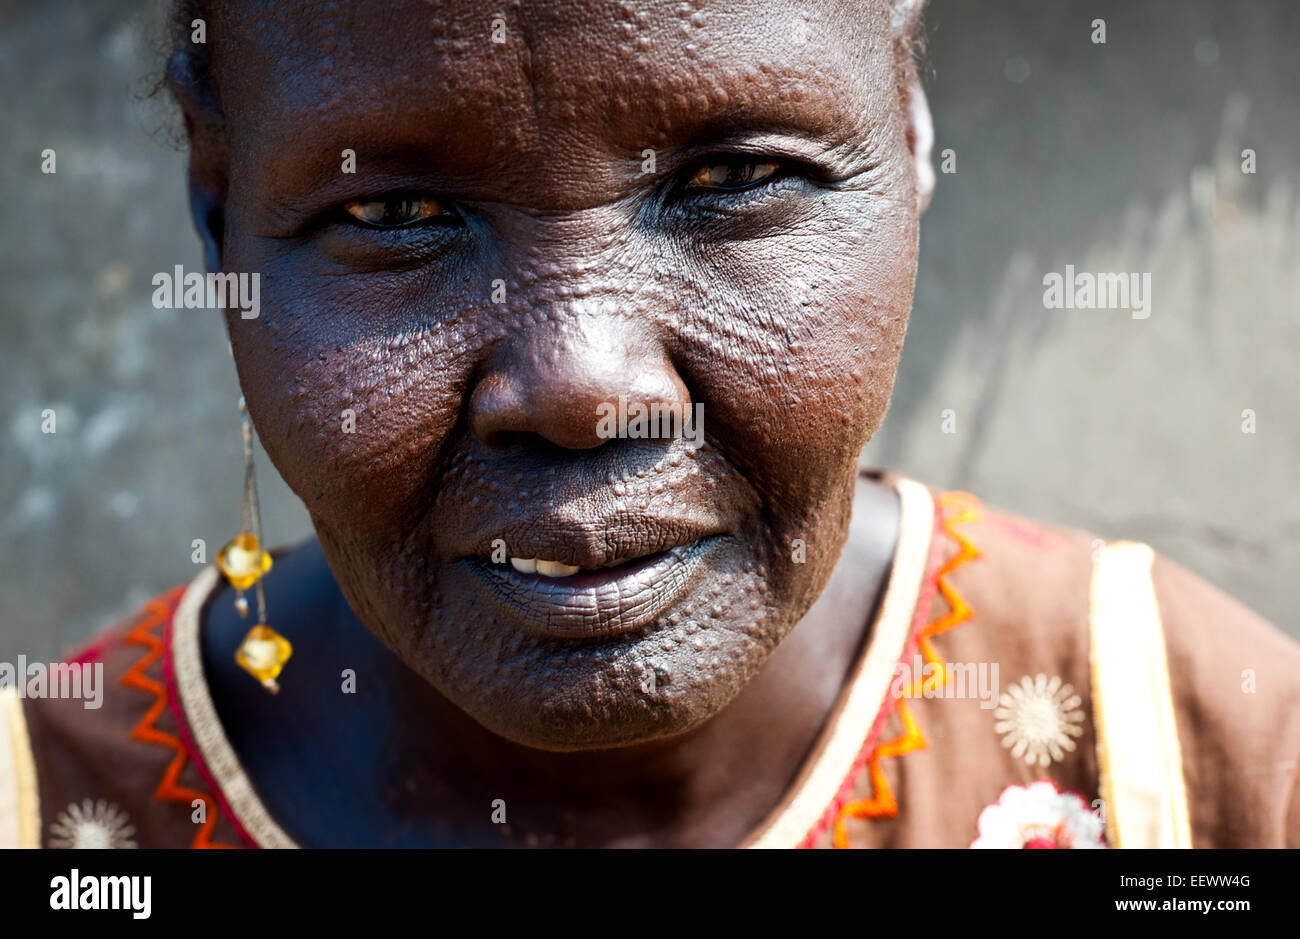 Woman belonging to the Nuer tribe with facial markings on the head. She is a refugee from South Sudan ( Ethiopia) - Stock Image